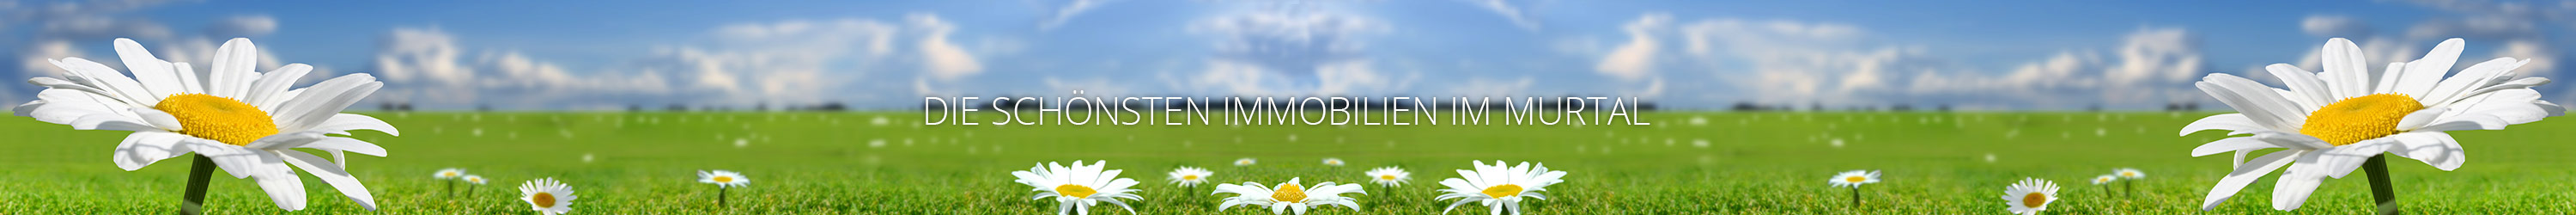 Immobilien | Ihre Immobilie in guter Hand !